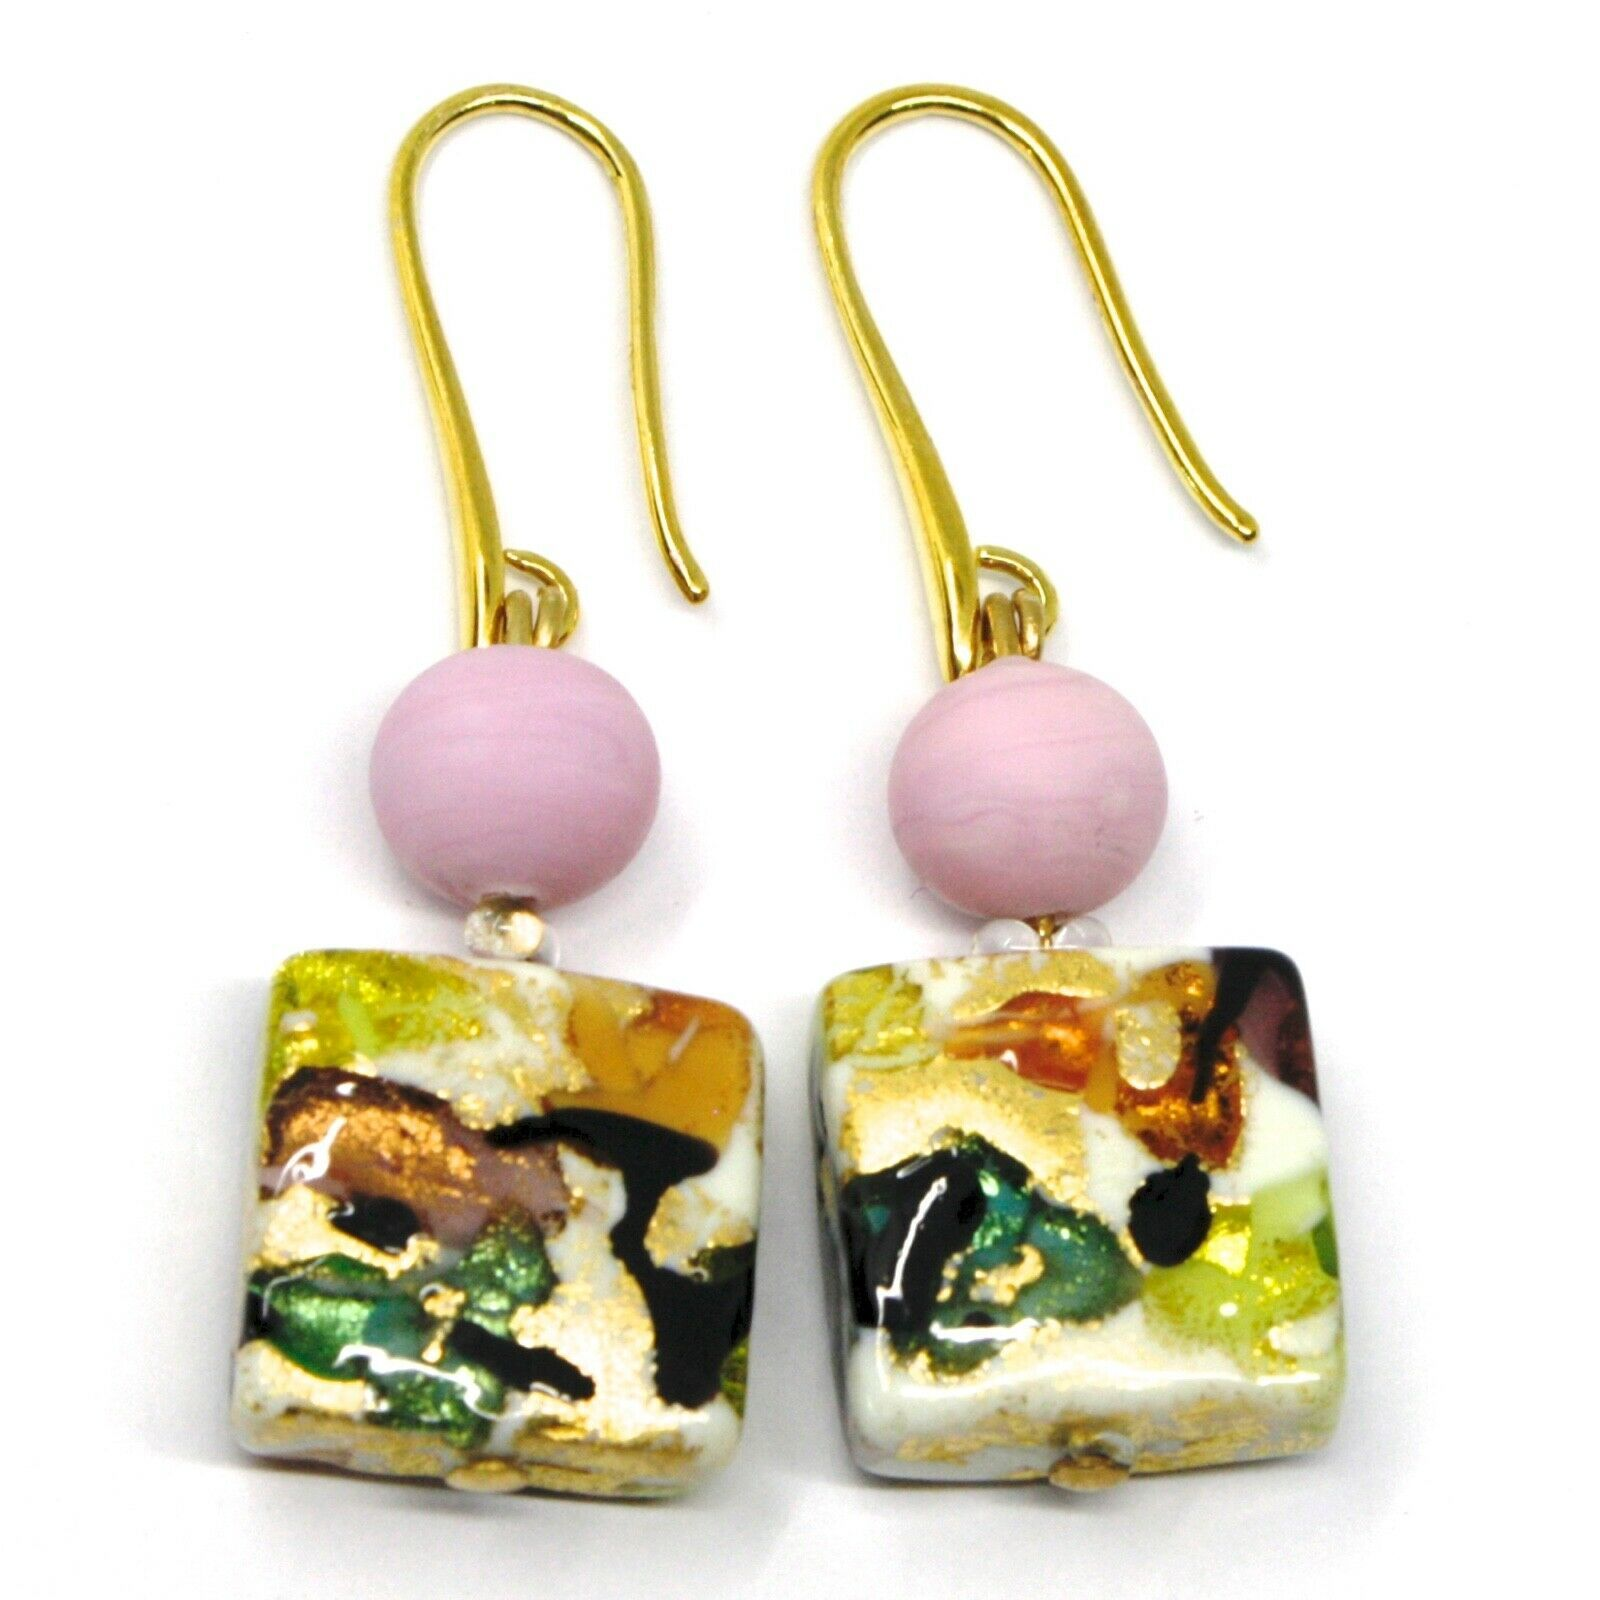 PENDANT EARRINGS PINK MULTI COLOR SQUARE MURANO GLASS GOLD LEAF MADE IN ITALY